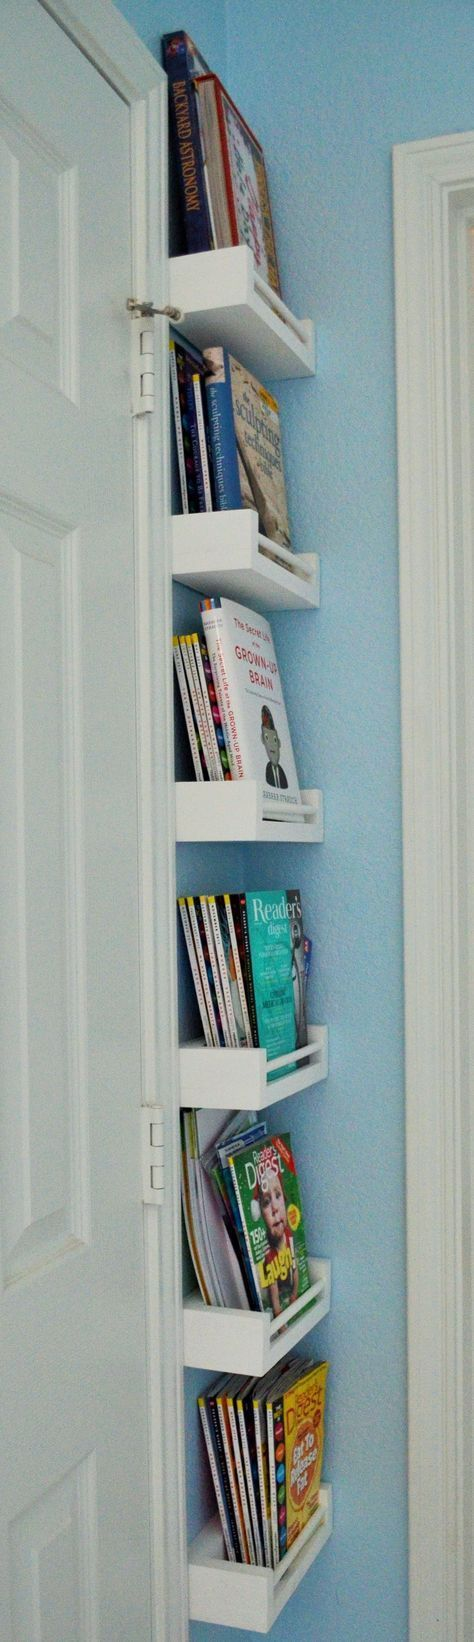 What are some tips for installing corner shelving?